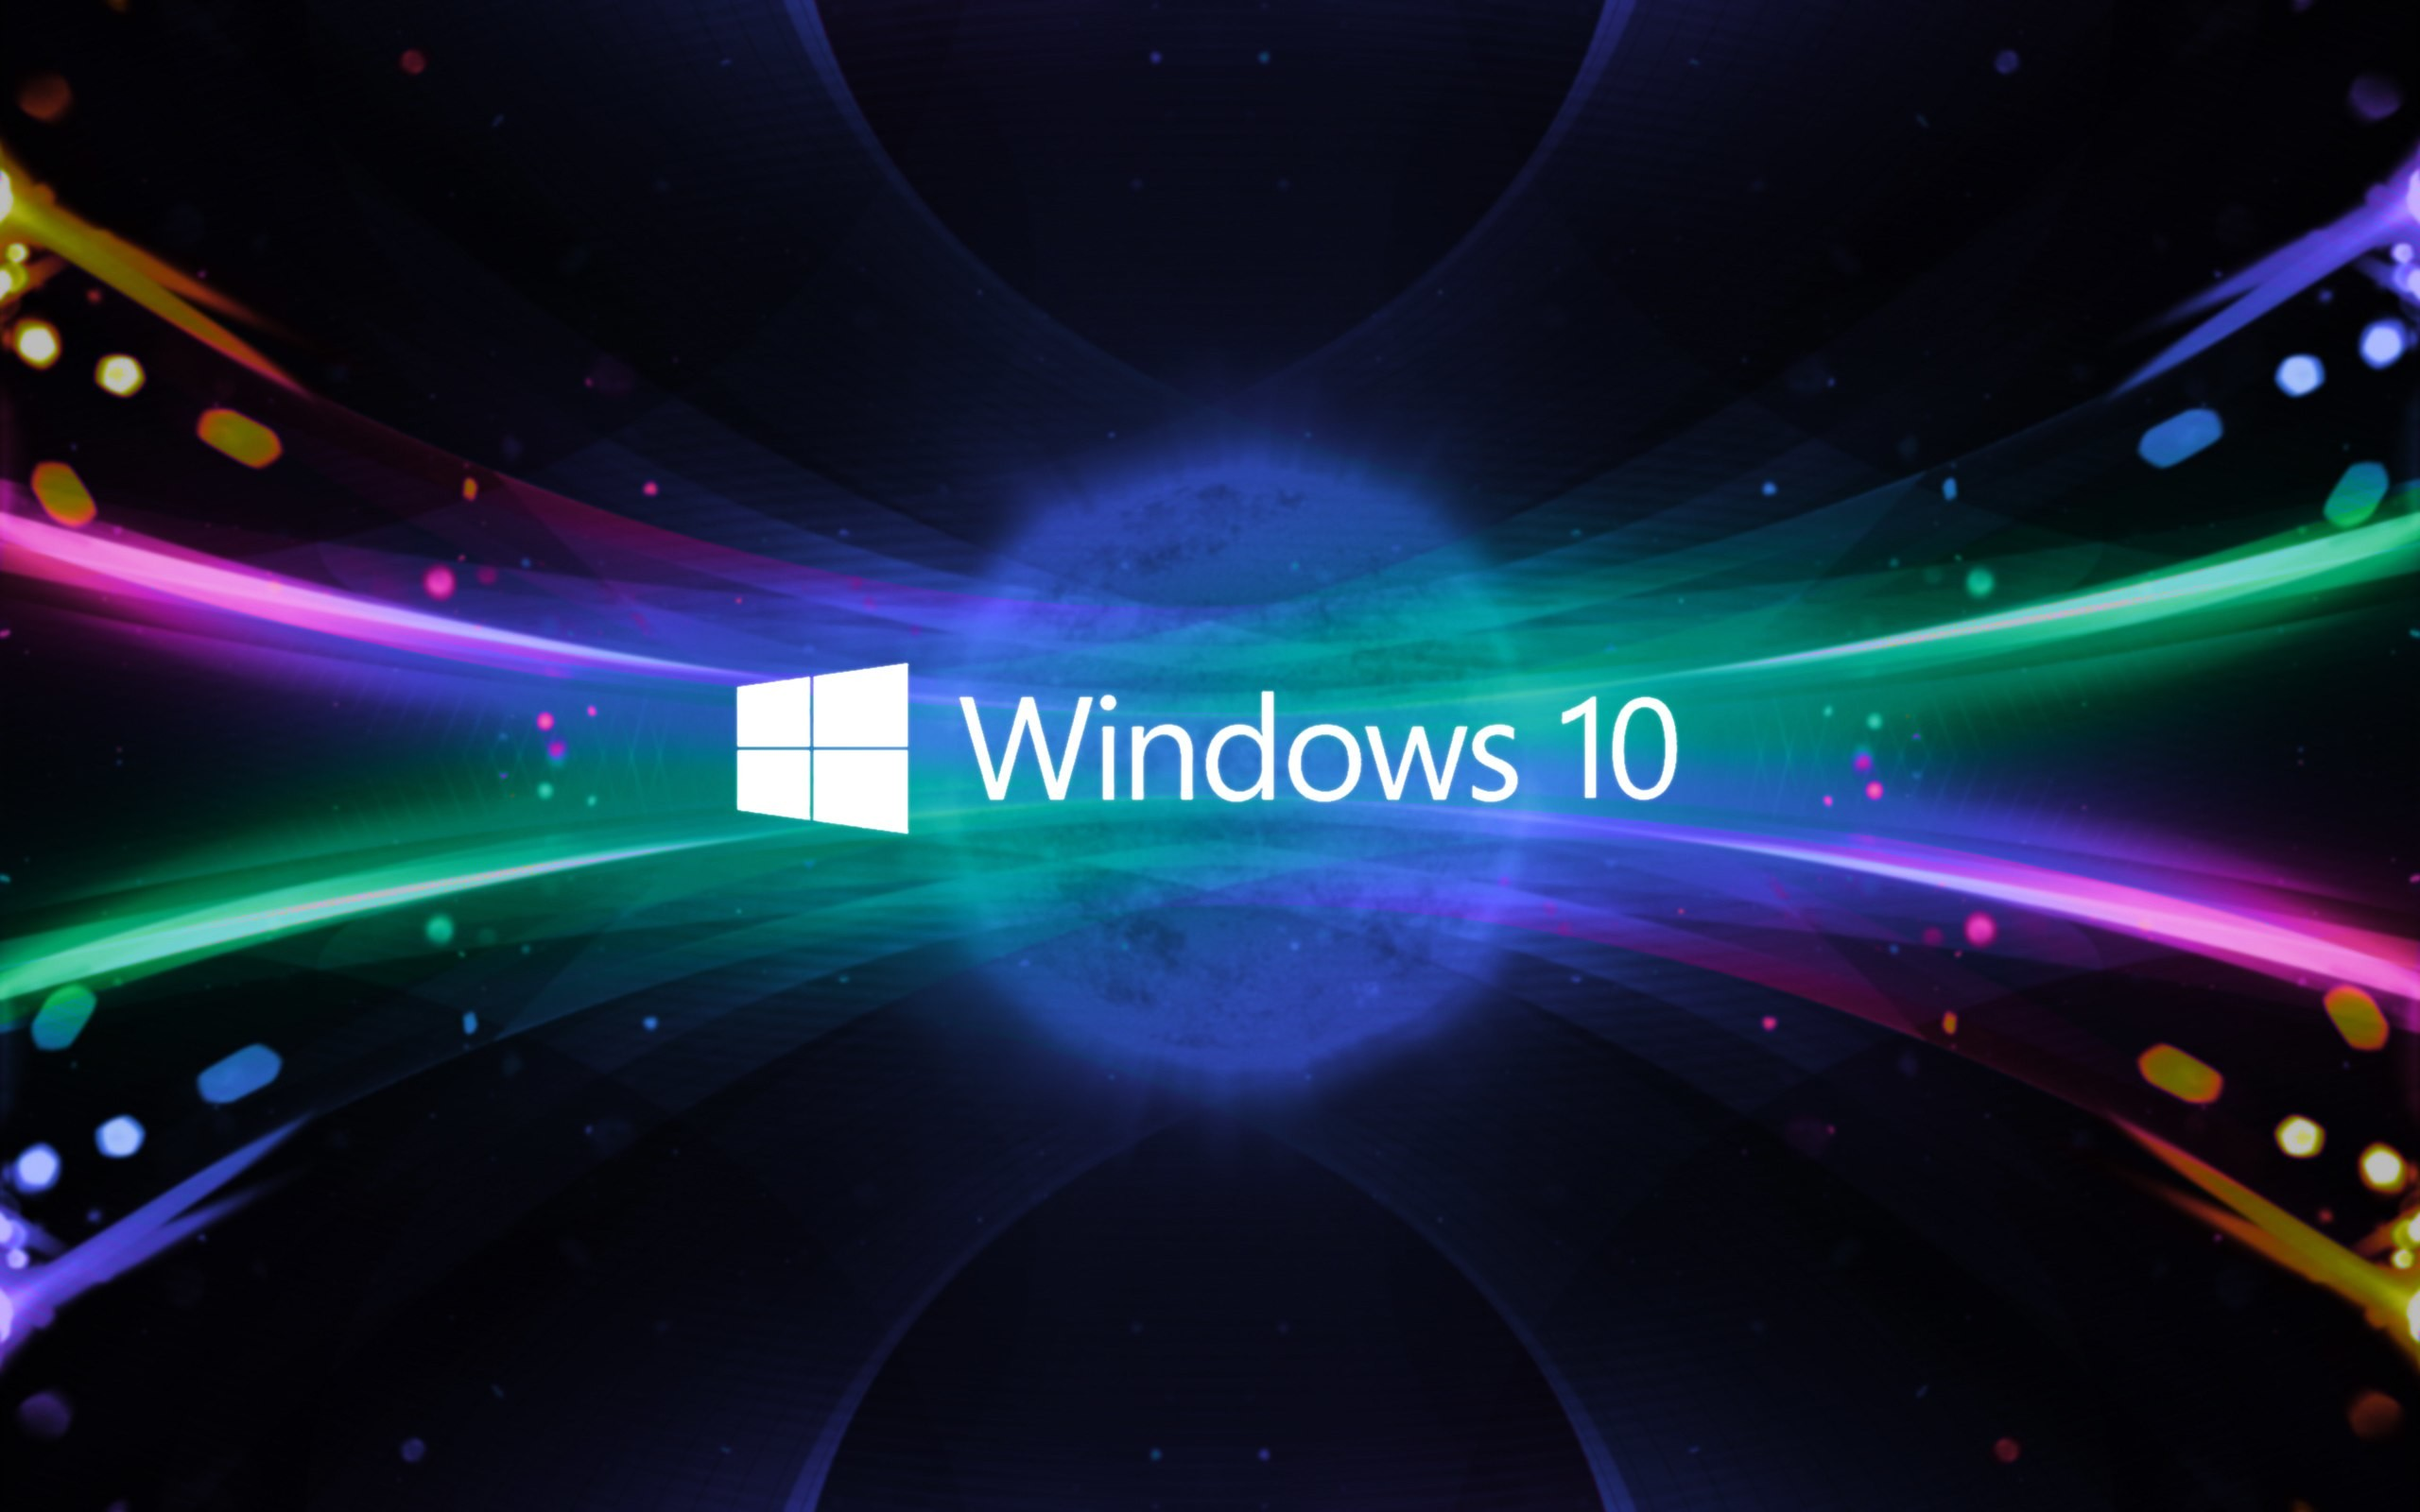 Live Wallpaper HD 11 for Windows 10 is free HD wallpaper. This .